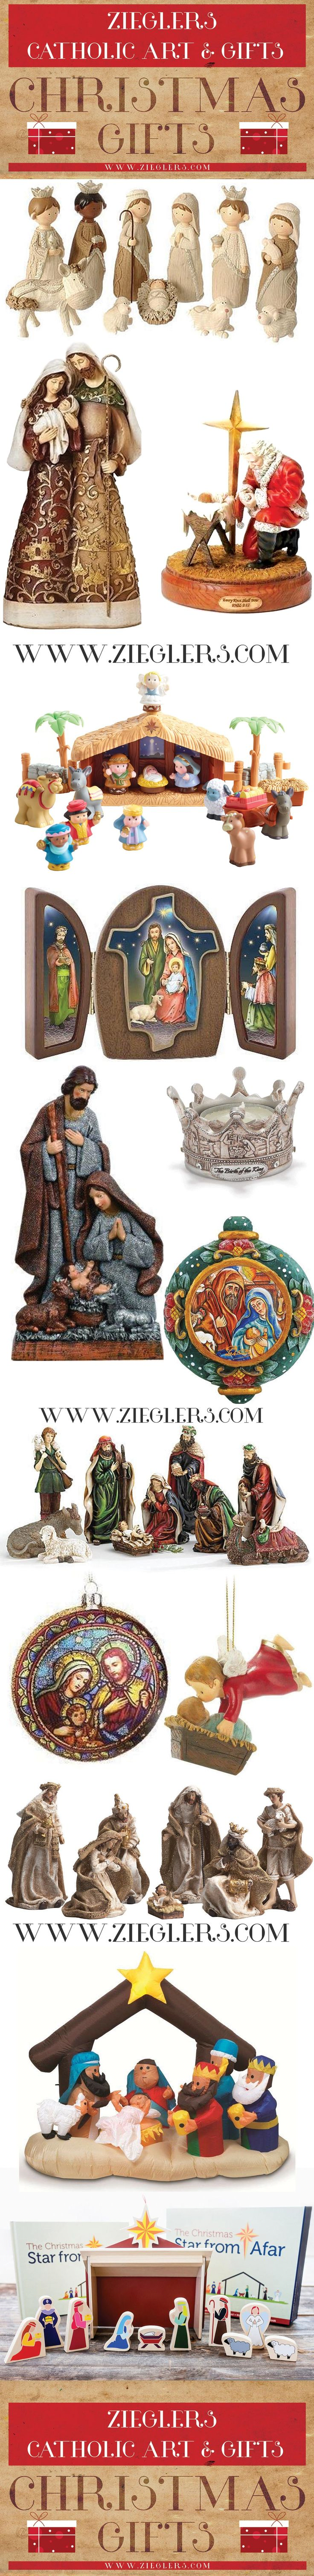 Looking for unique and holy Christmas gifts? We have Nativities, Images of the Holy Family, Kneeling Santa, the best Christmas religious Ornaments and so much more! Come see our amazing Catholic Christian gifts and helps remember Jesus is the reason for this Christmas Season! Open 24 hours! :) Zieglers.com